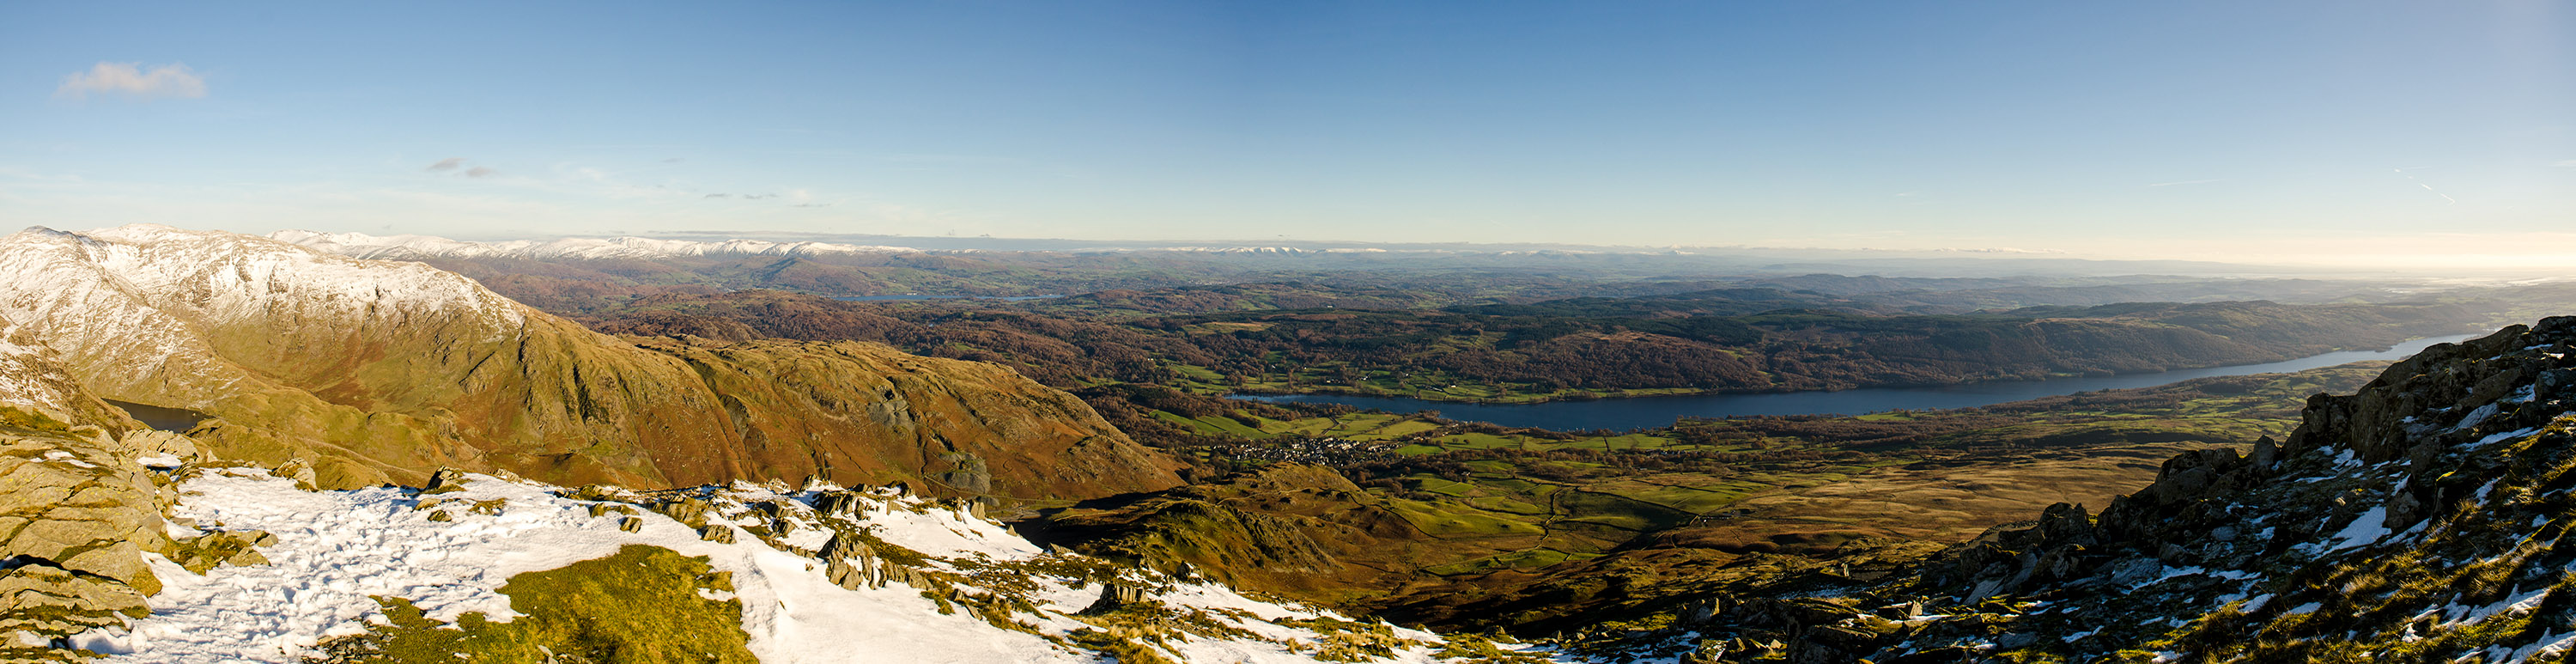 Coniston Water from Old Man of Coniston summit